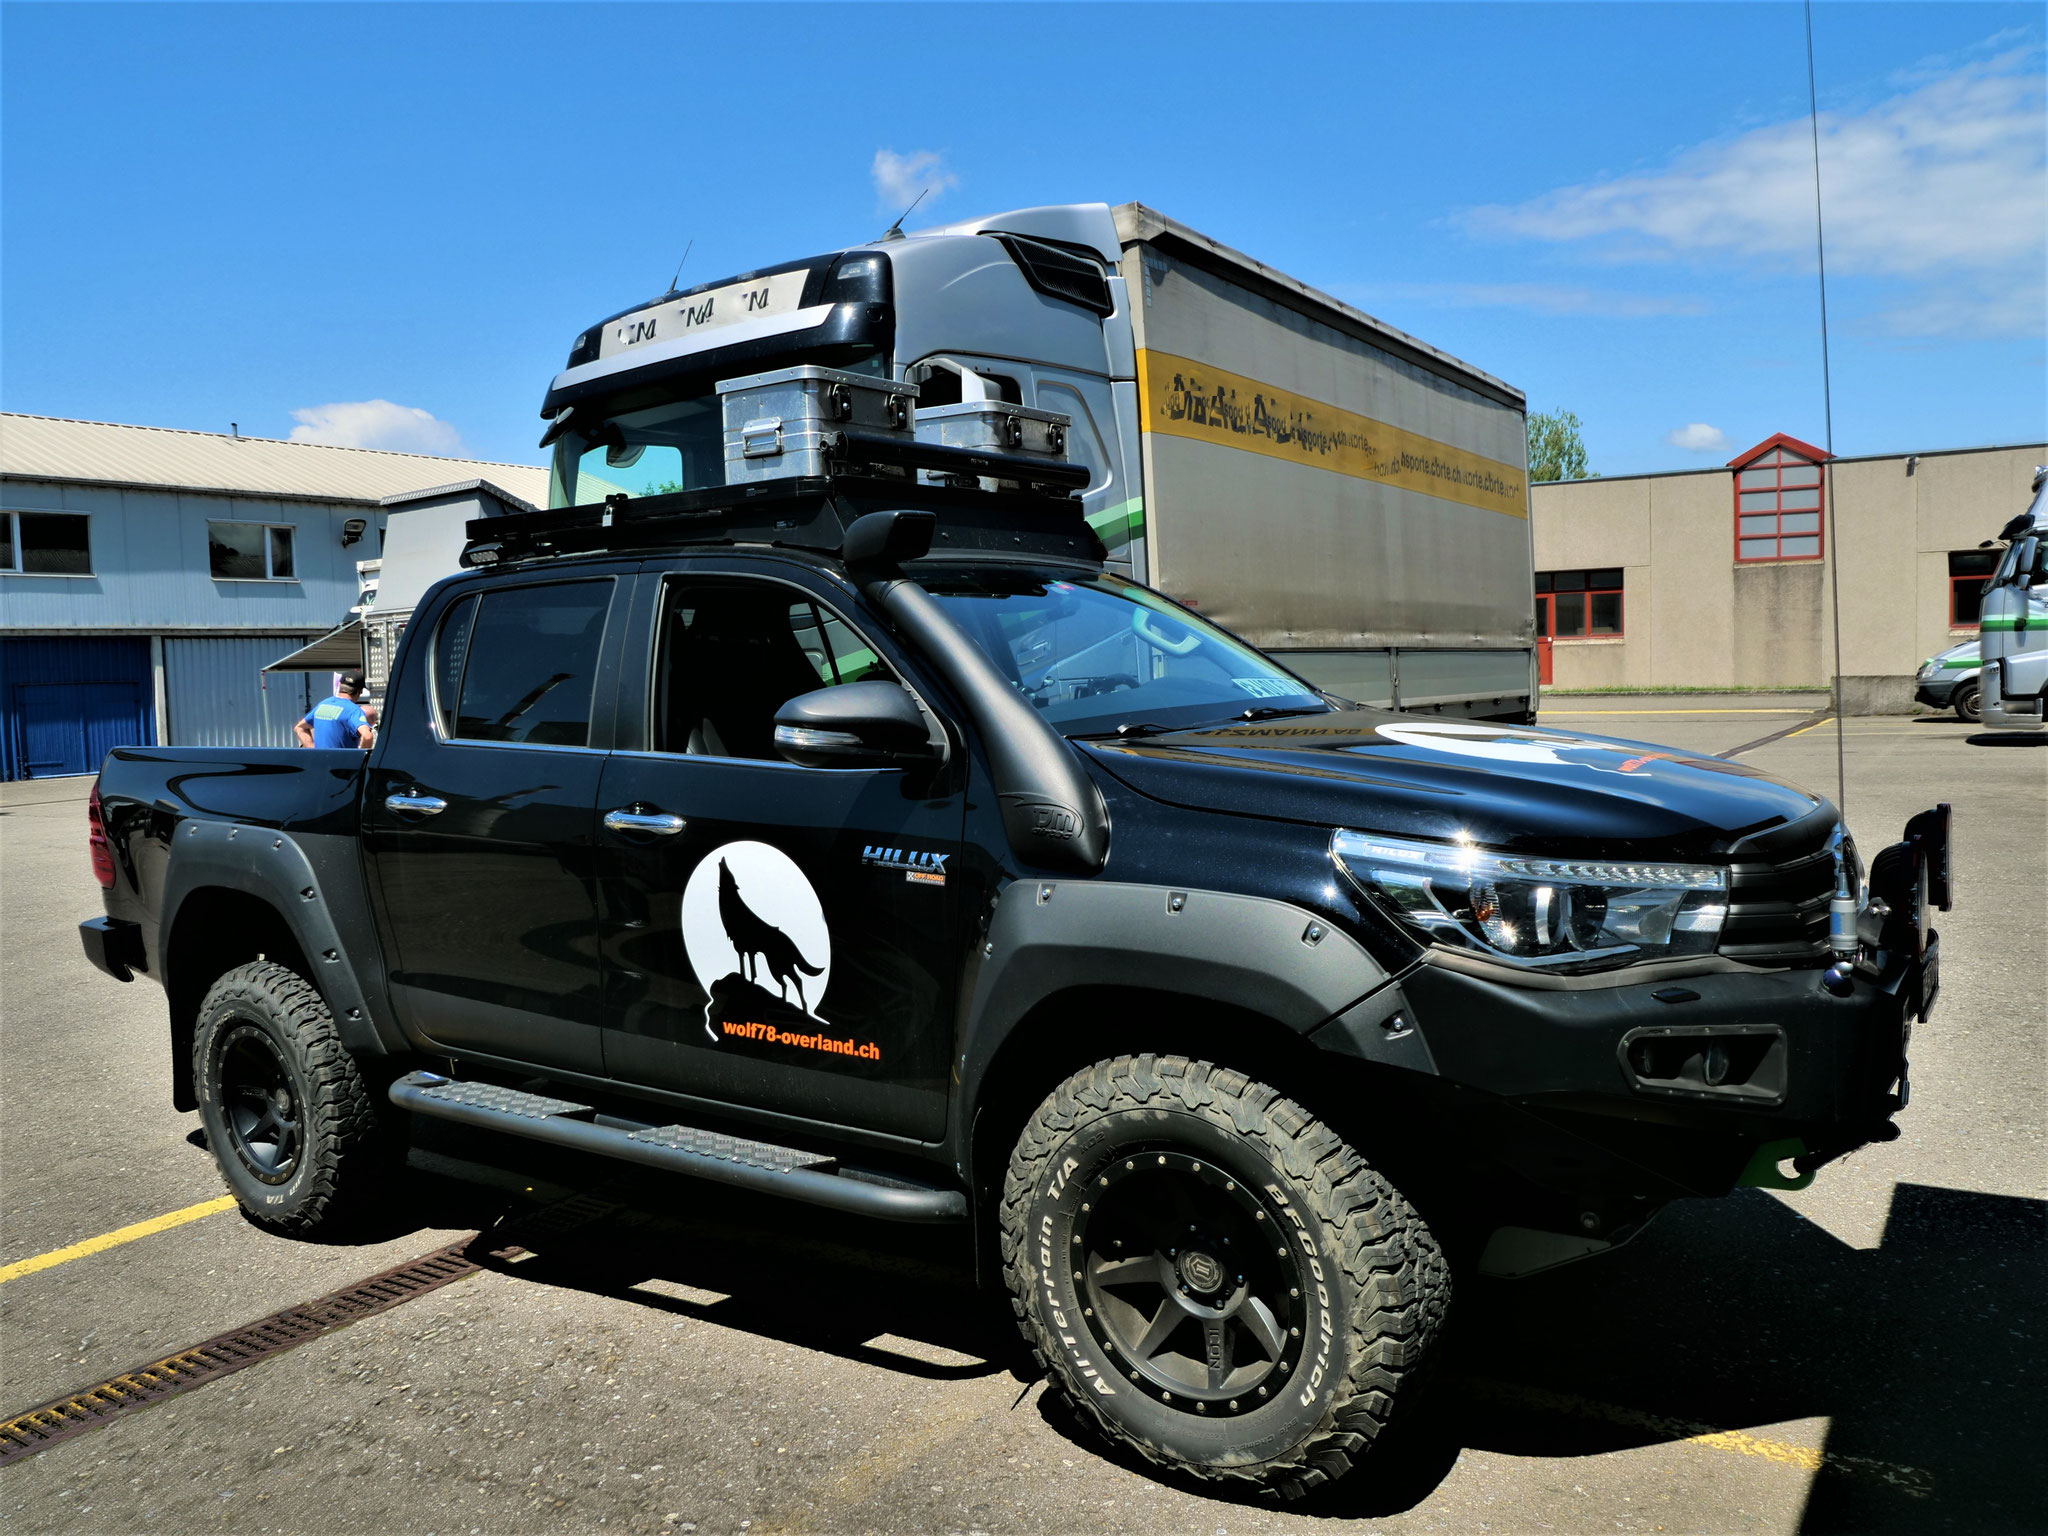 EXKAB Wohnkabine Toyota Hilux arctic trucks At33 At35 travel overland truck Revo N80 #ProjektBlackwolf offroad Pick up camper Drive Your own Way AFN4x4 Rival4x4 bfgoodrich t/a ko2 285/70R17 ltprtz DL0011-C Explore Without Limits #borntoroam Expedition